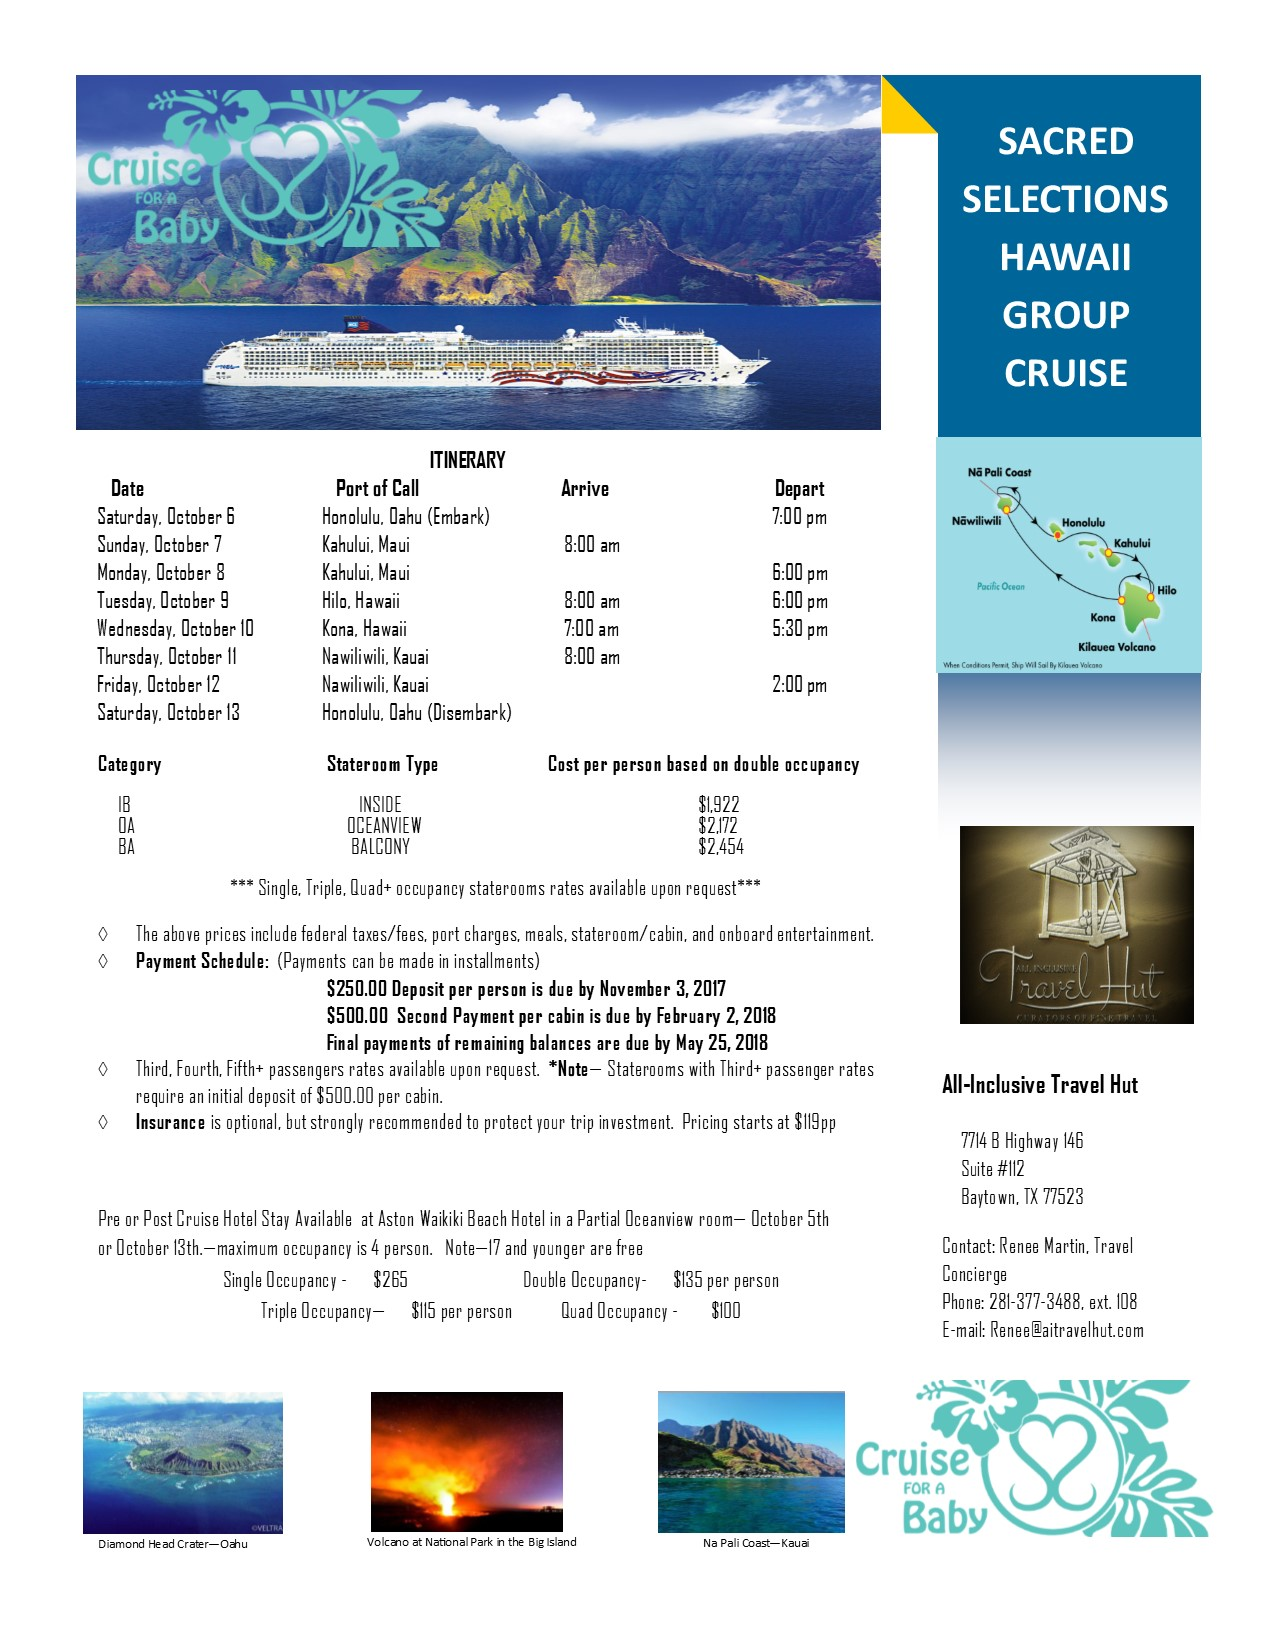 Join Sacred Selections in Hawaii